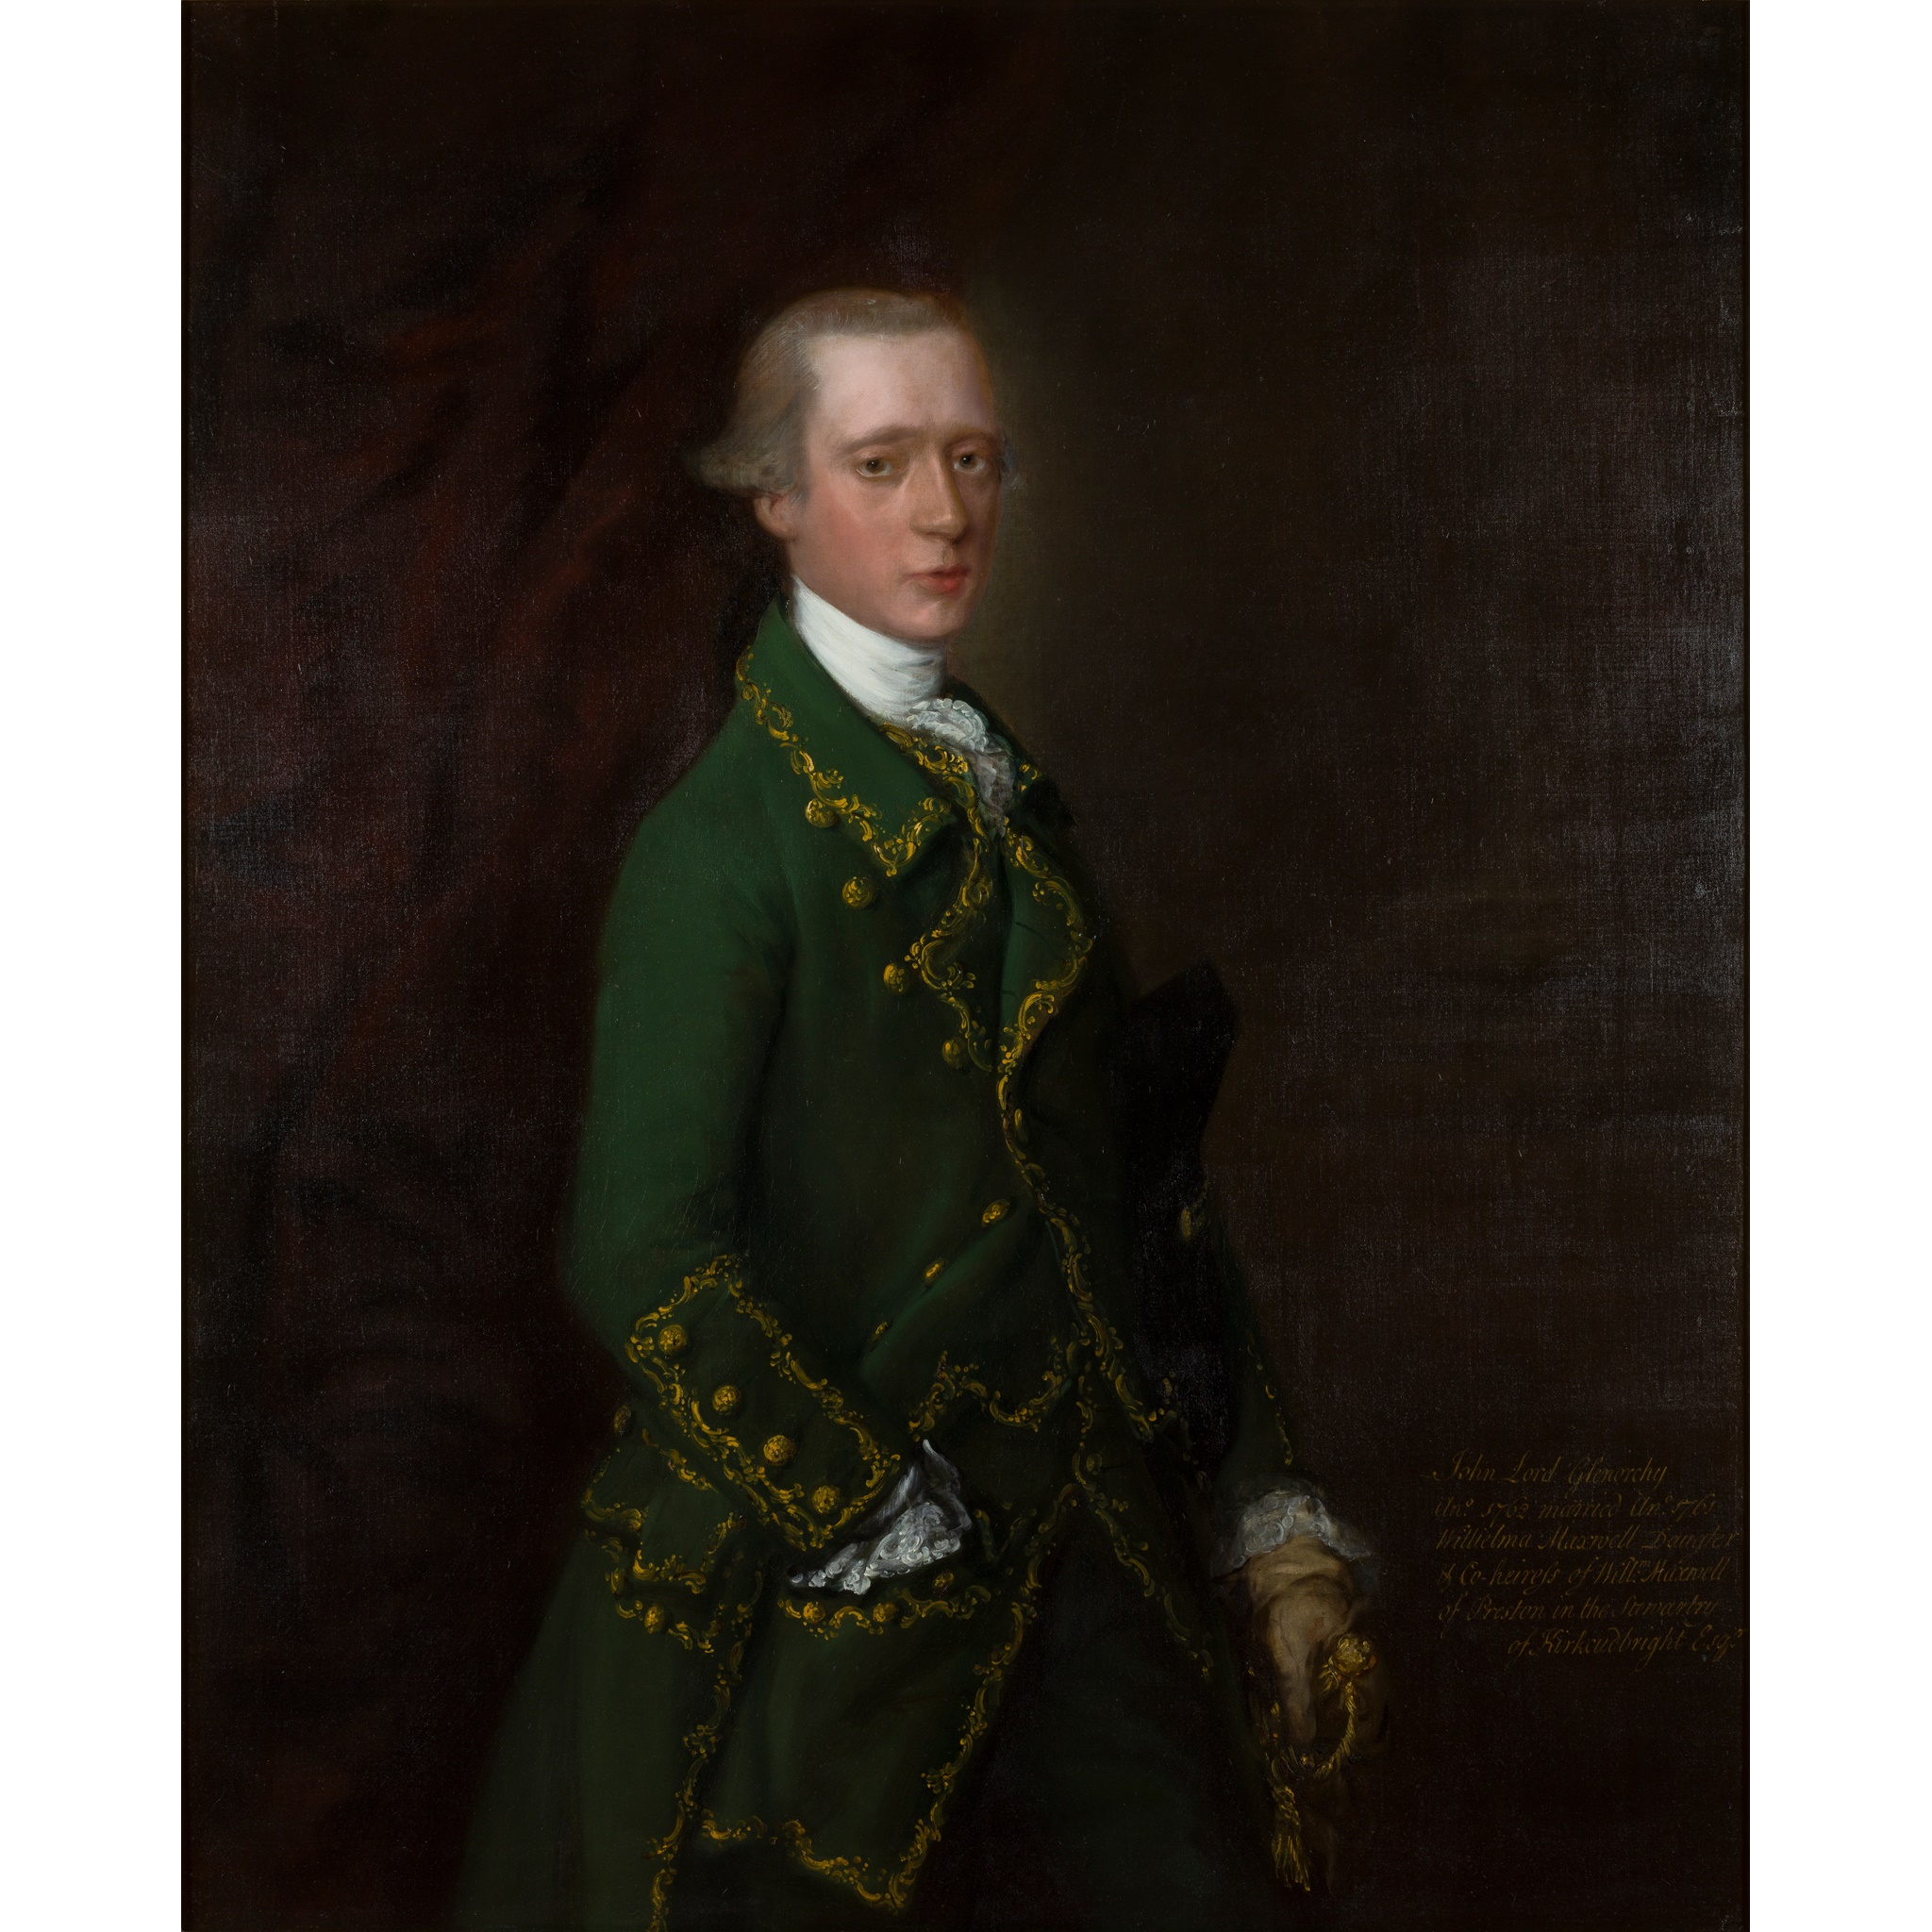 THOMAS GAINSBOROUGH R.A. (BRITISH 1717-1788) HALF-LENGTH PORTRAIT OF JOHN CAMPBELL, VISCOUNT GLENORCHY (1738-1771) - 1762-63